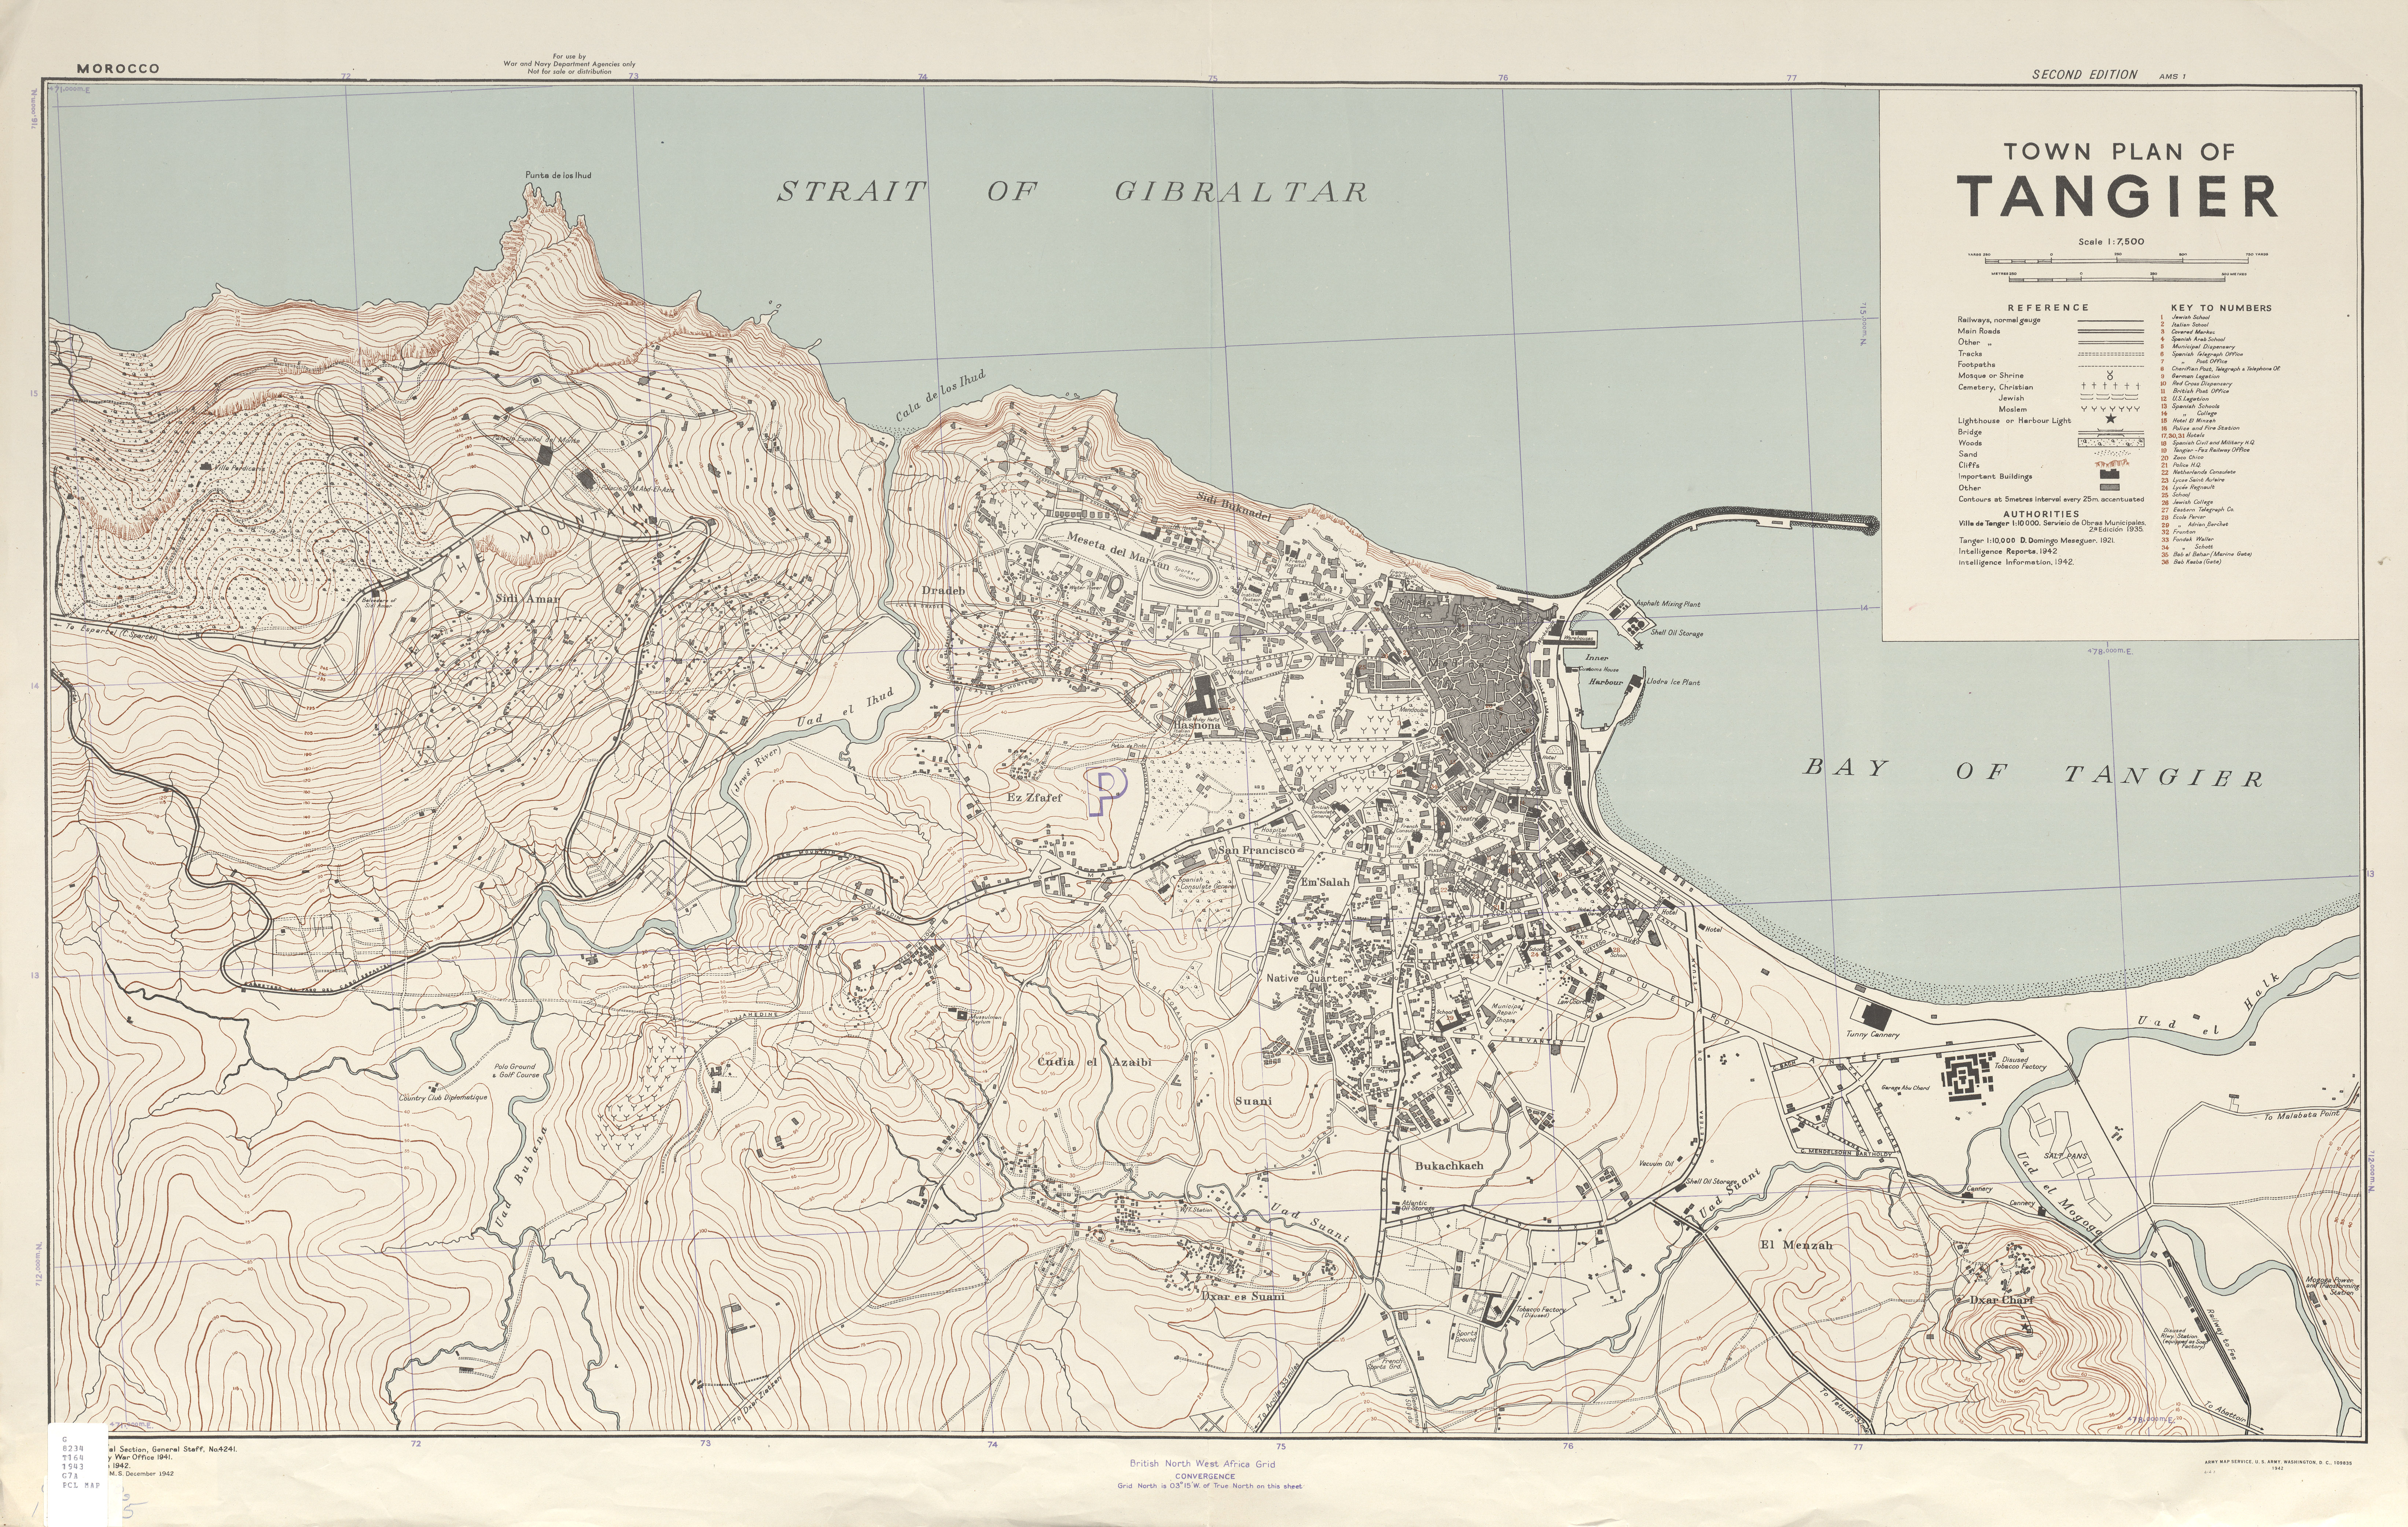 Tangier City Map, Morocco 1943